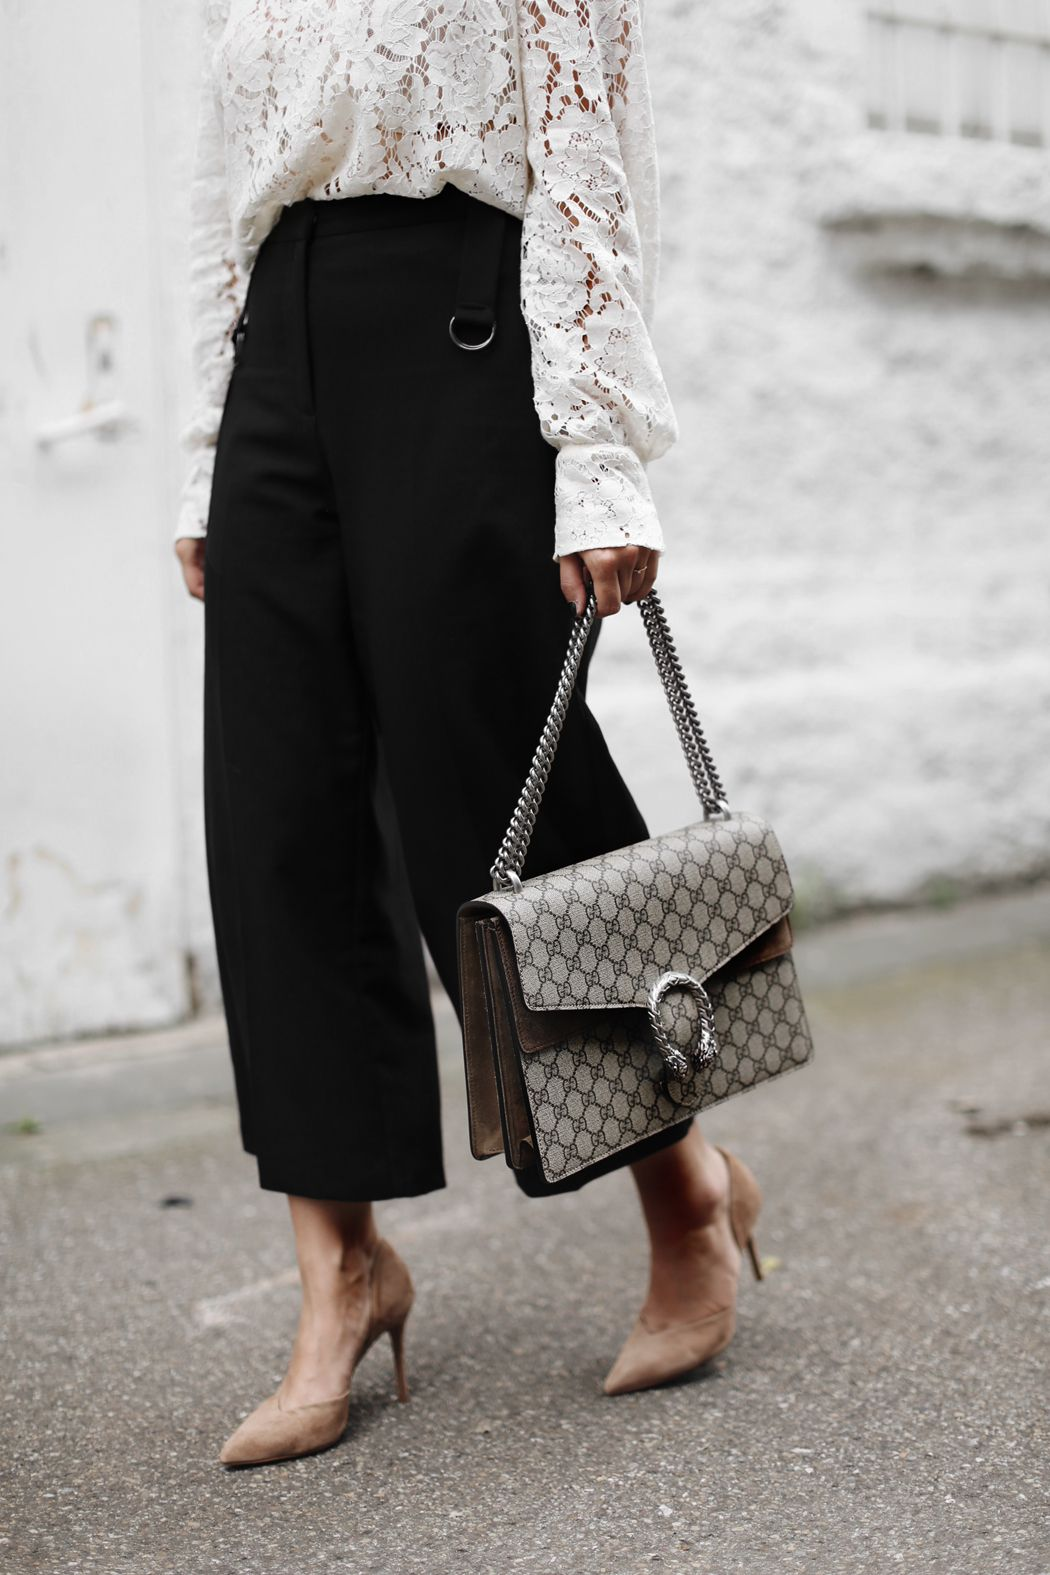 A Personal Style & Lifestyle Blog | Culotte style, Designer